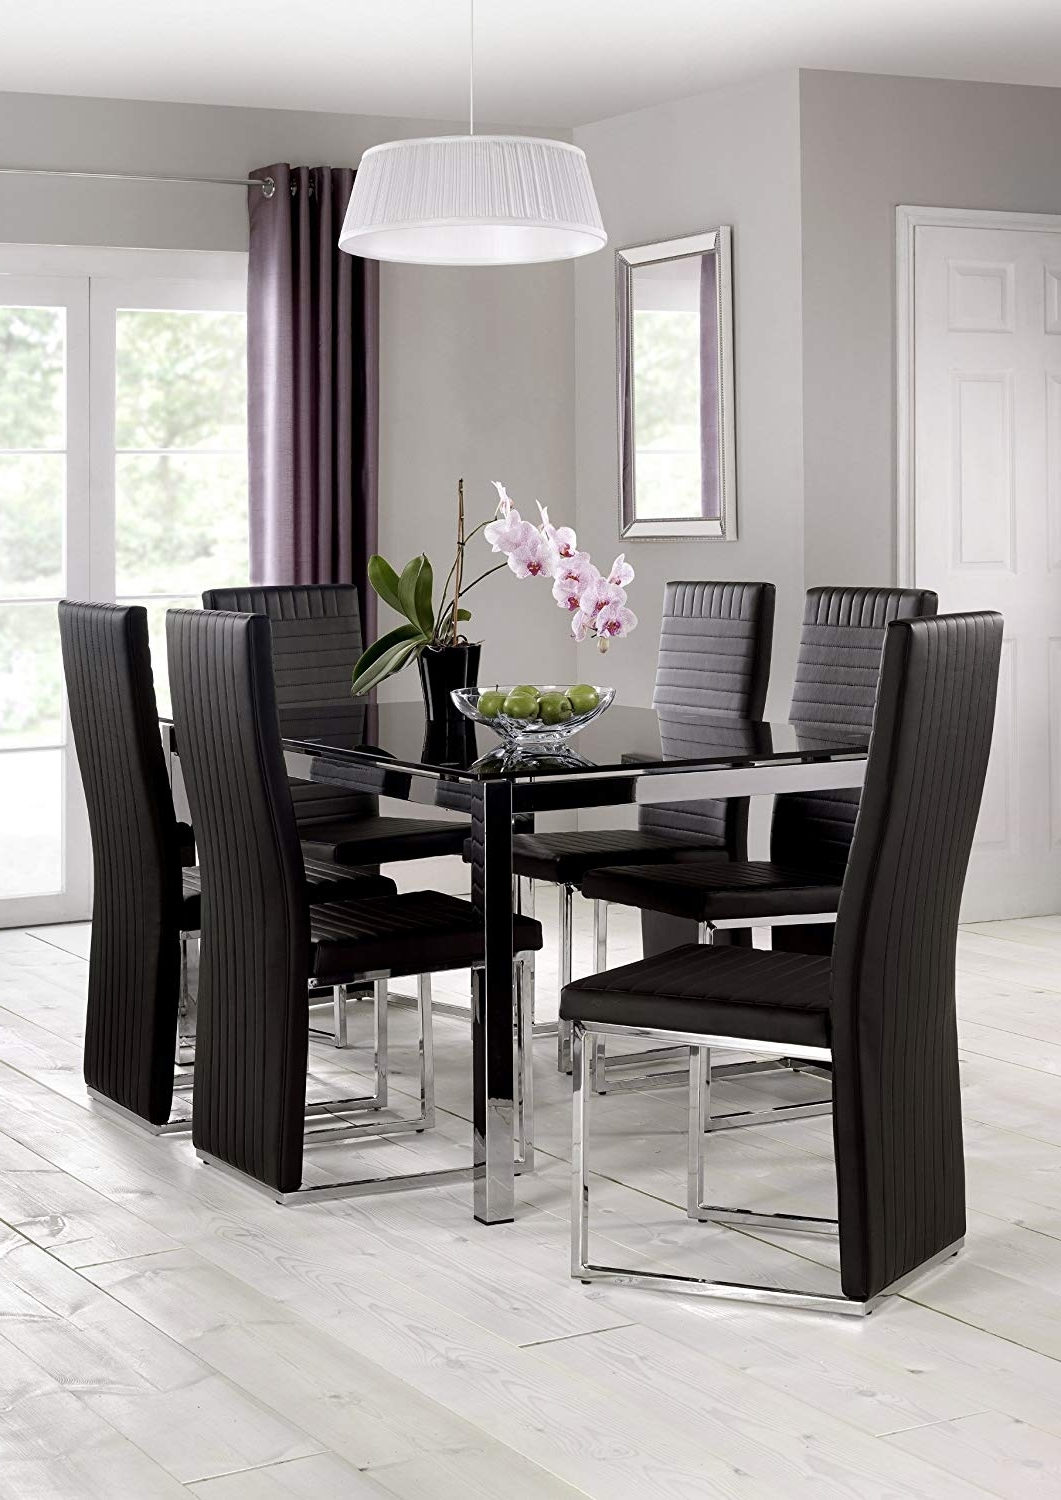 Glass Dining Tables And 6 Chairs regarding Most Current Julian Bowen Tempo Glass Dining Table, Chrome/black: Amazon.co.uk